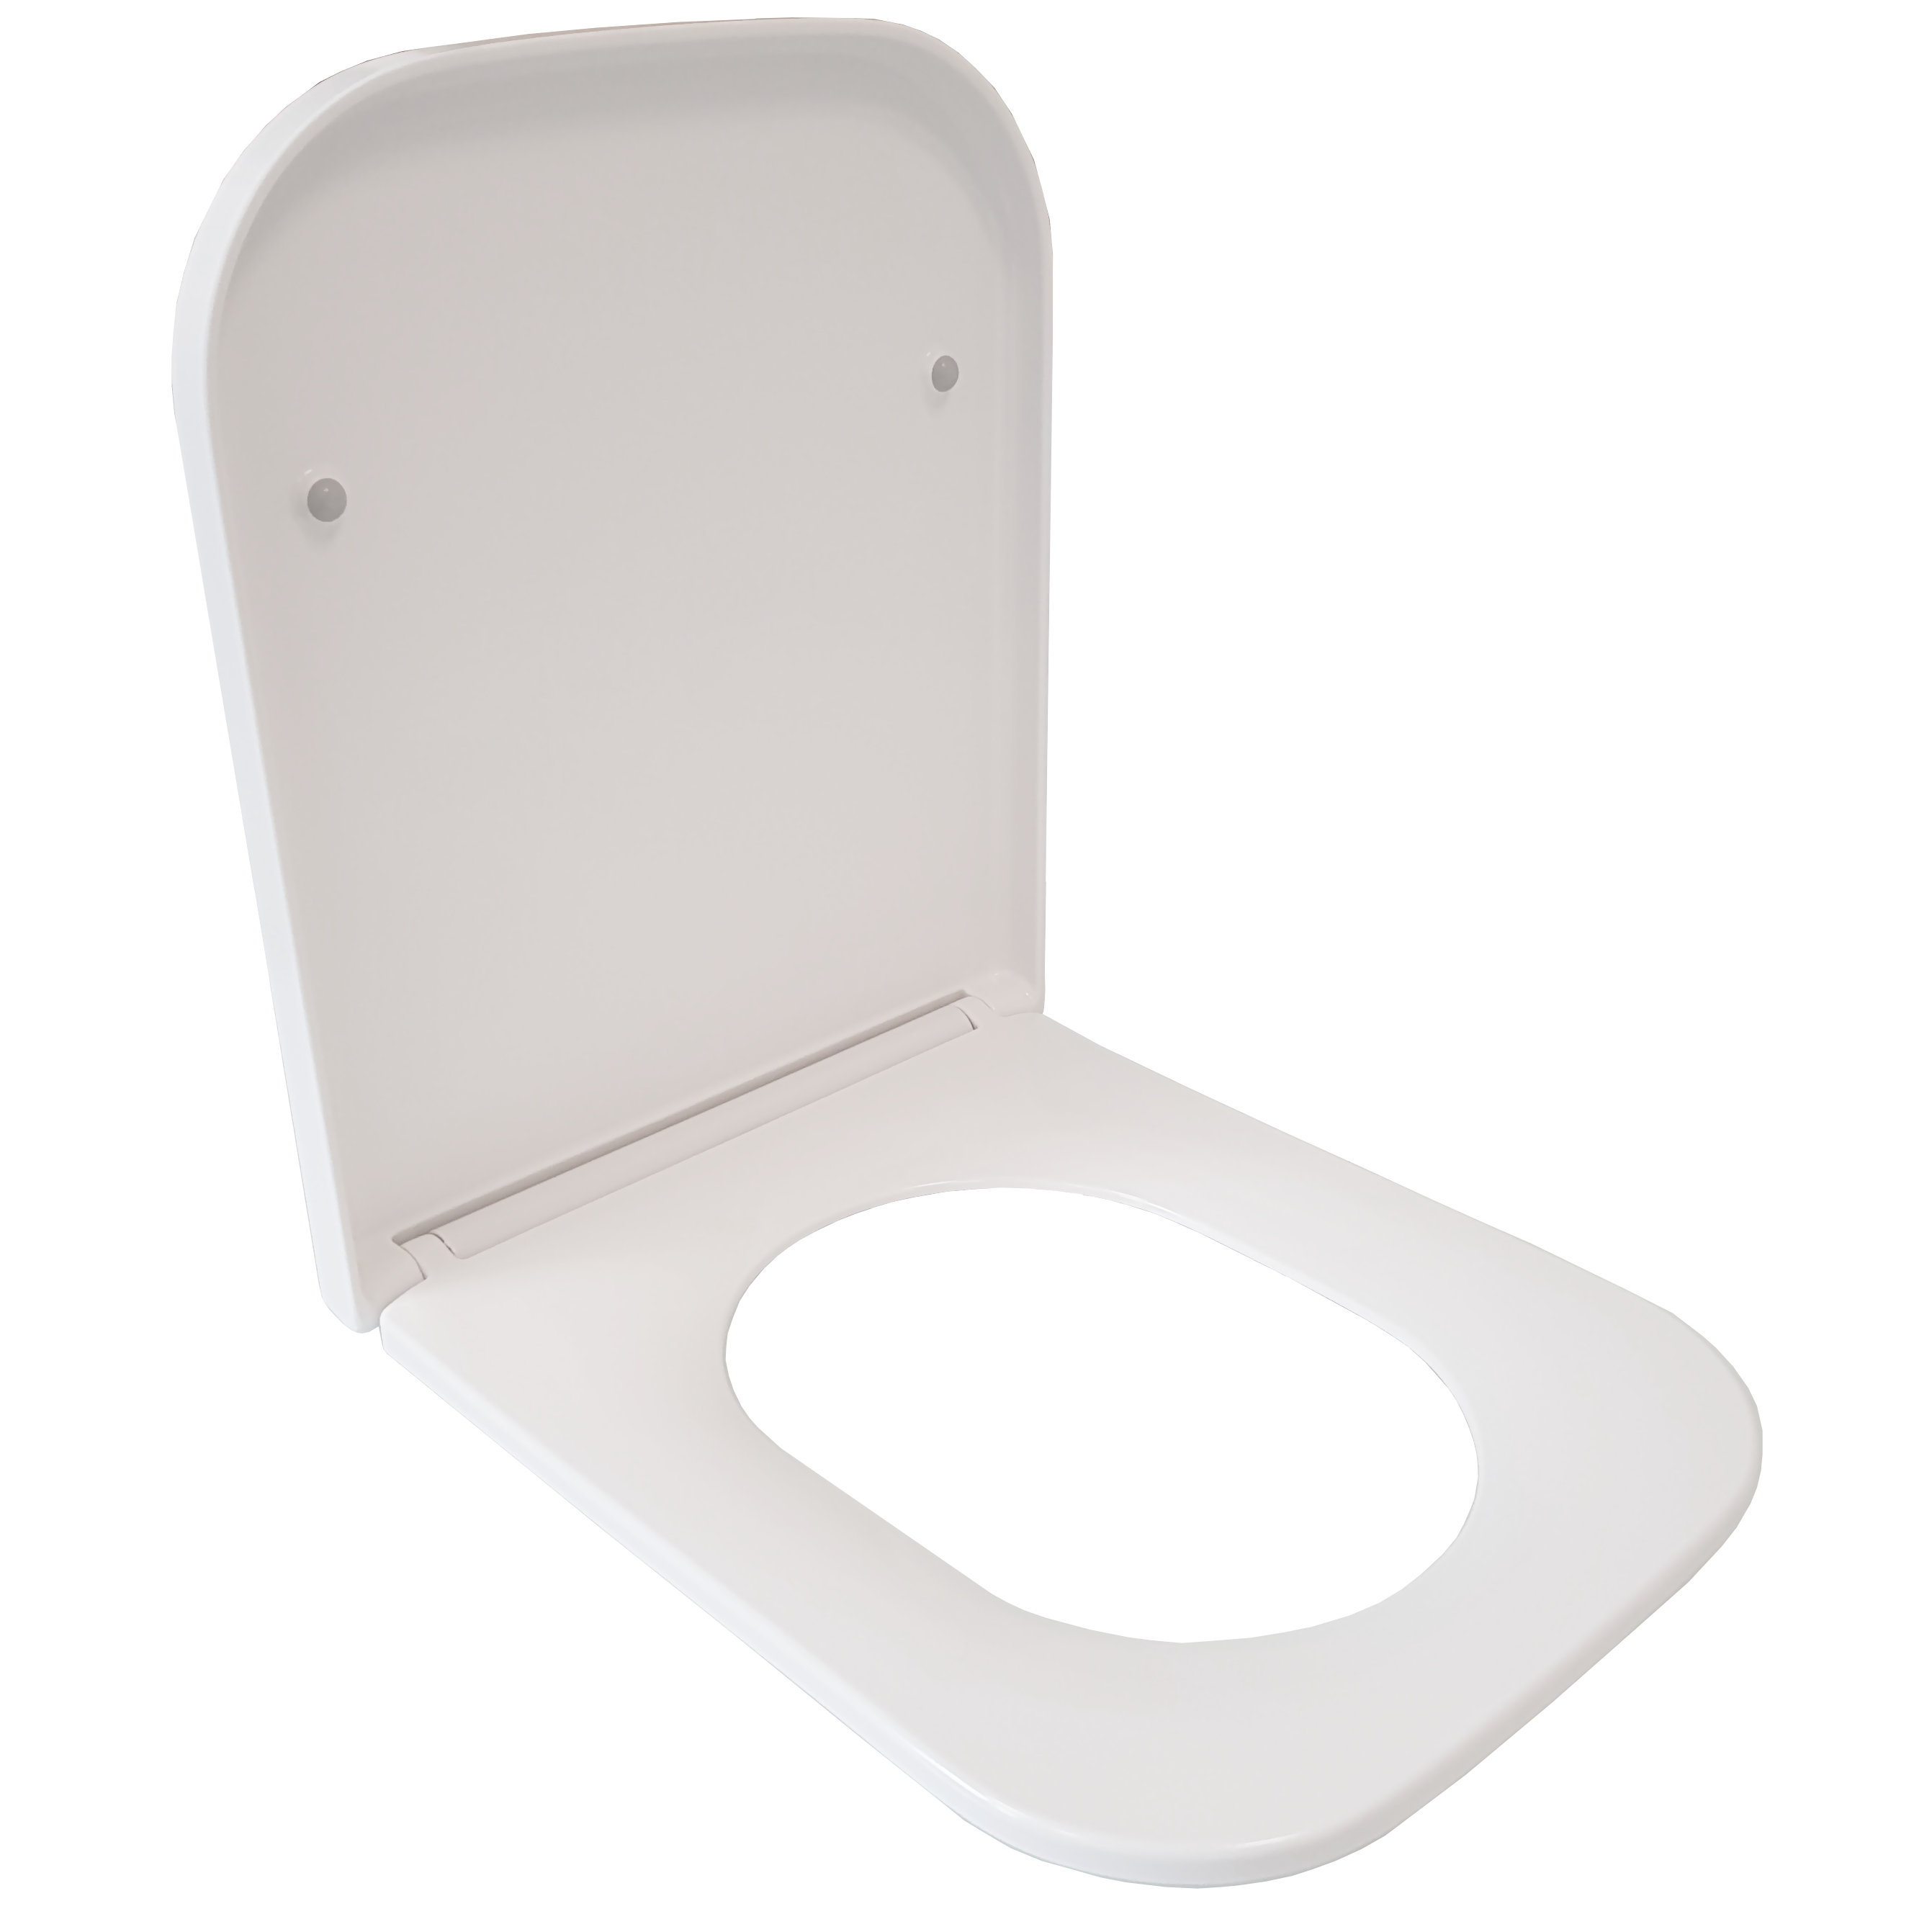 extra-flacher Soft-Close WC-Sitz für WH-6020/6021